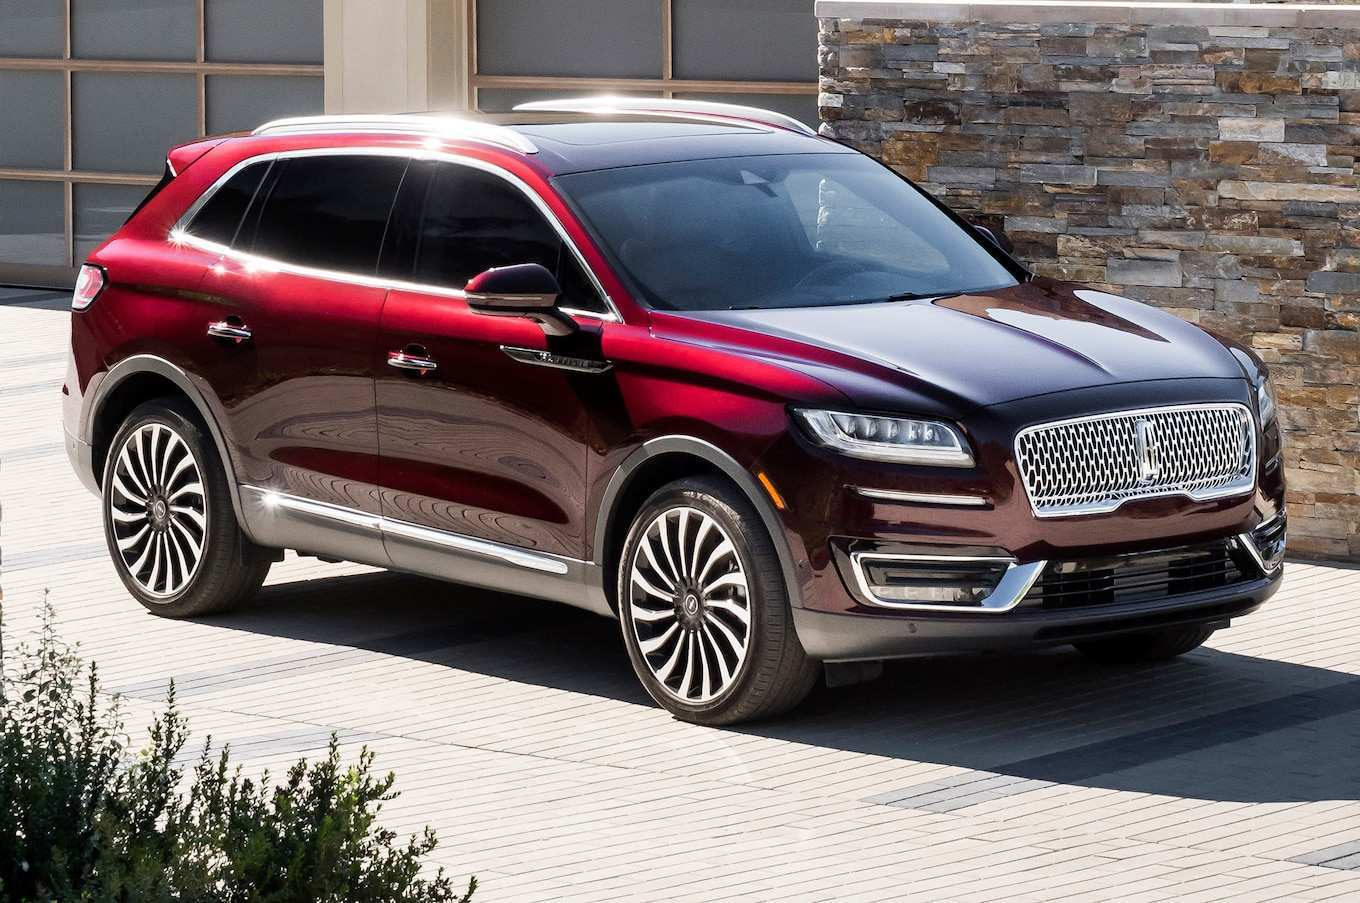 69 All New 2019 Lincoln MKZ Pricing